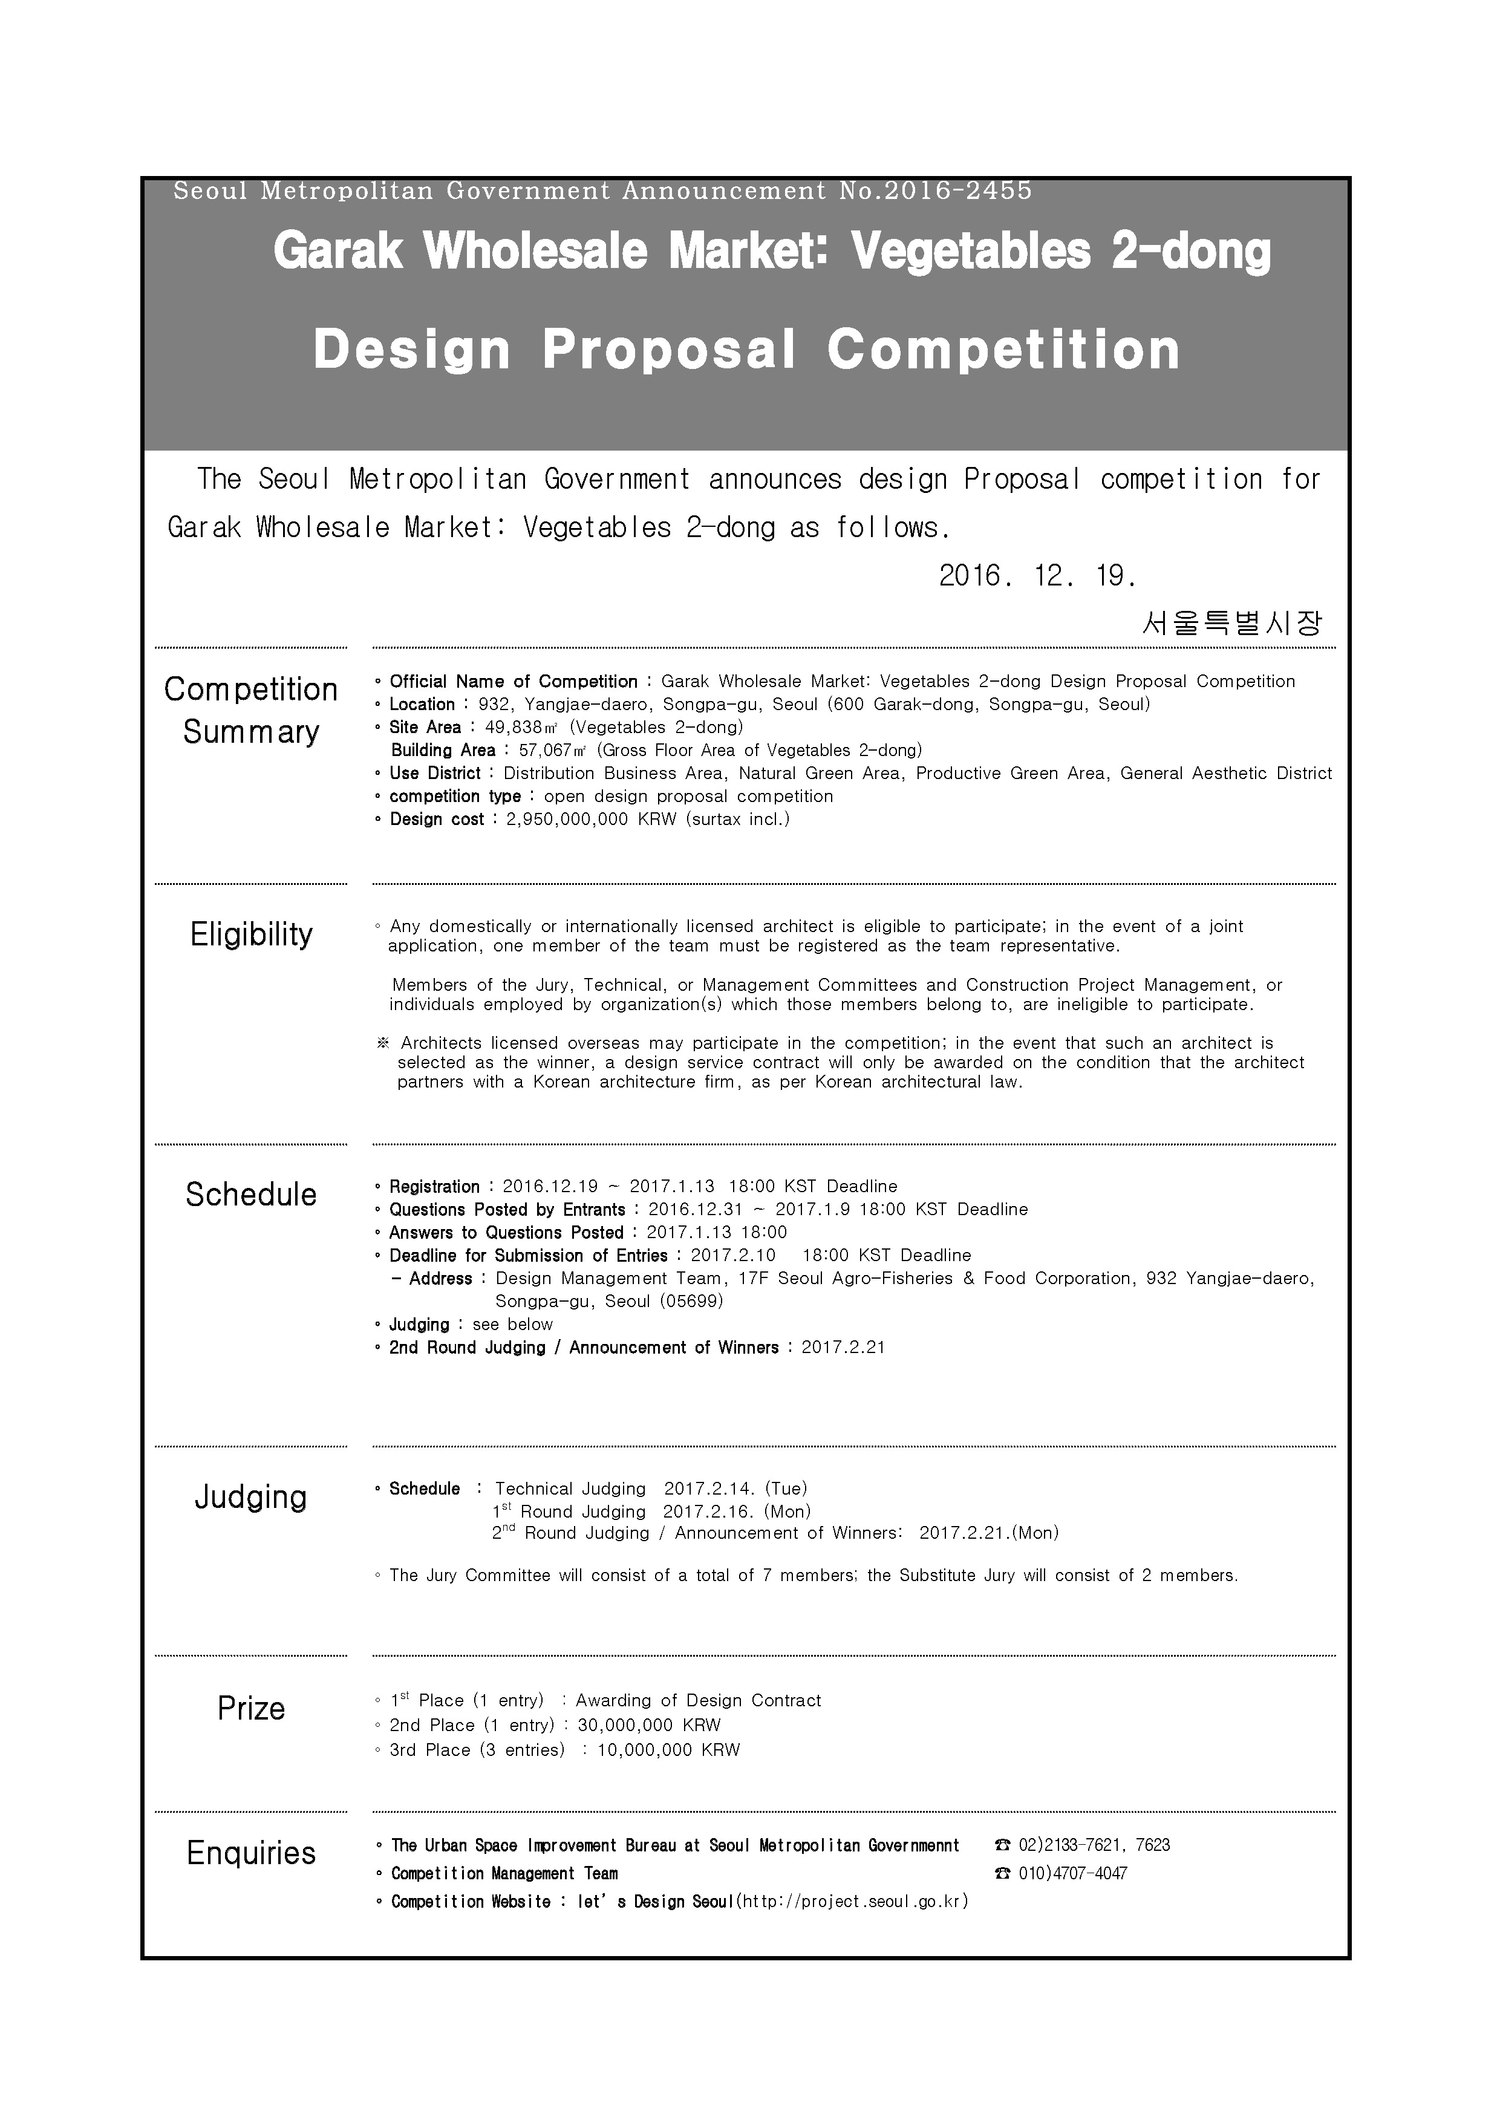 Architecture Design Questions garak wholesale market: vegetables bldg. 2 design proposal competition